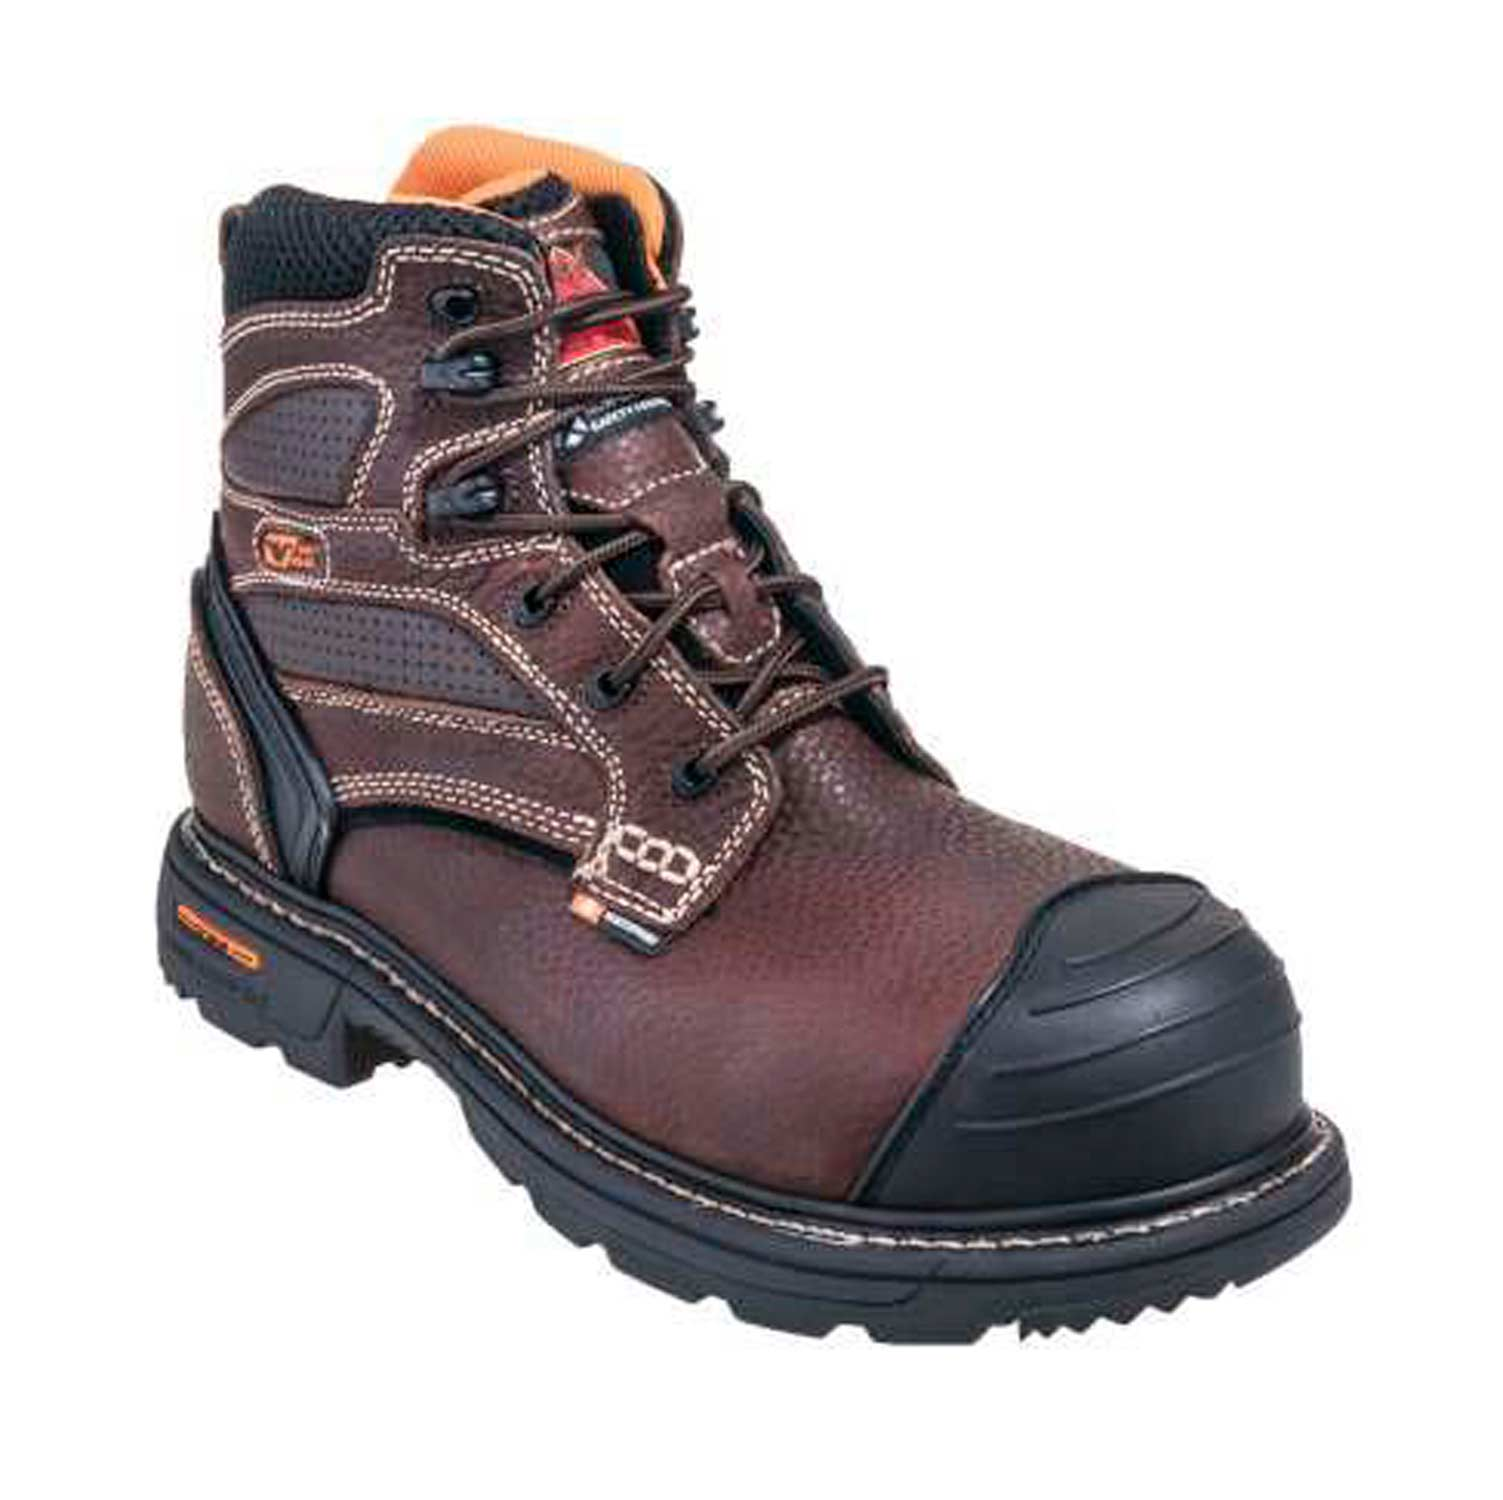 9ff8f412598 Thorogood Men's Composite Toe Waterproof Non Metal Boots.